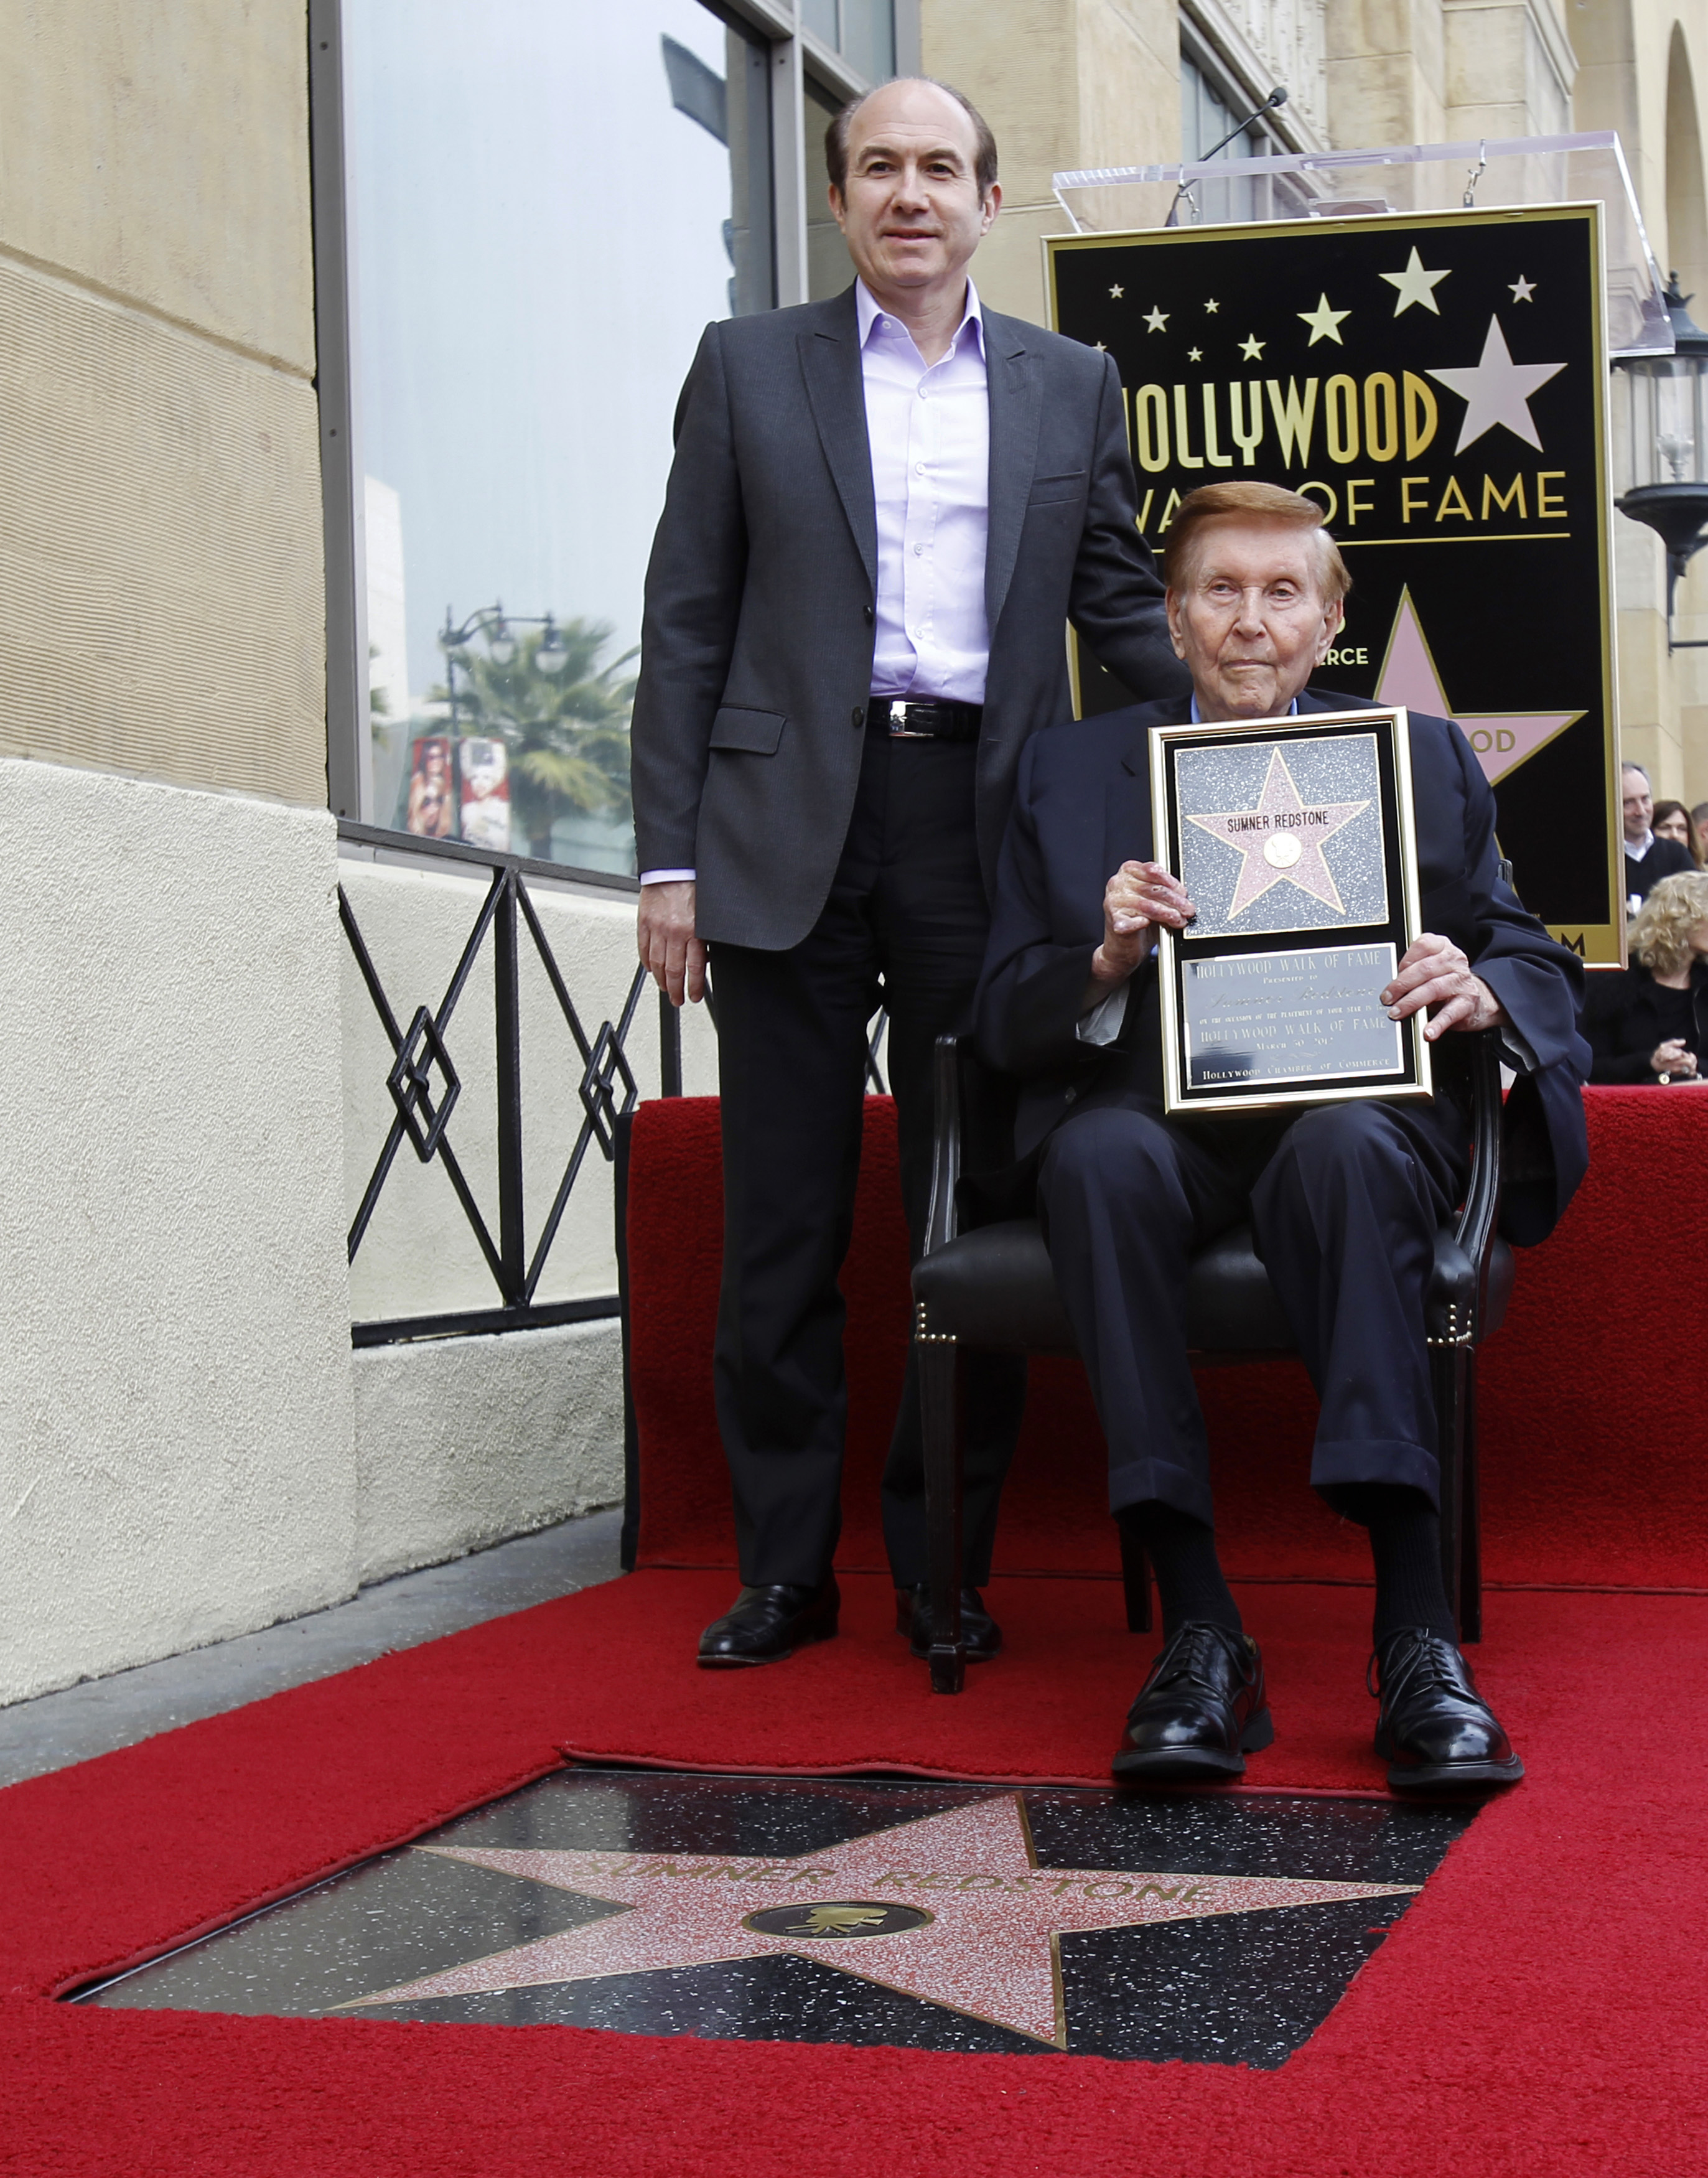 Executive Chairman of Viacom and CBS Corporation Redstone poses after his star was unveiled on the Walk of Fame in Hollywood